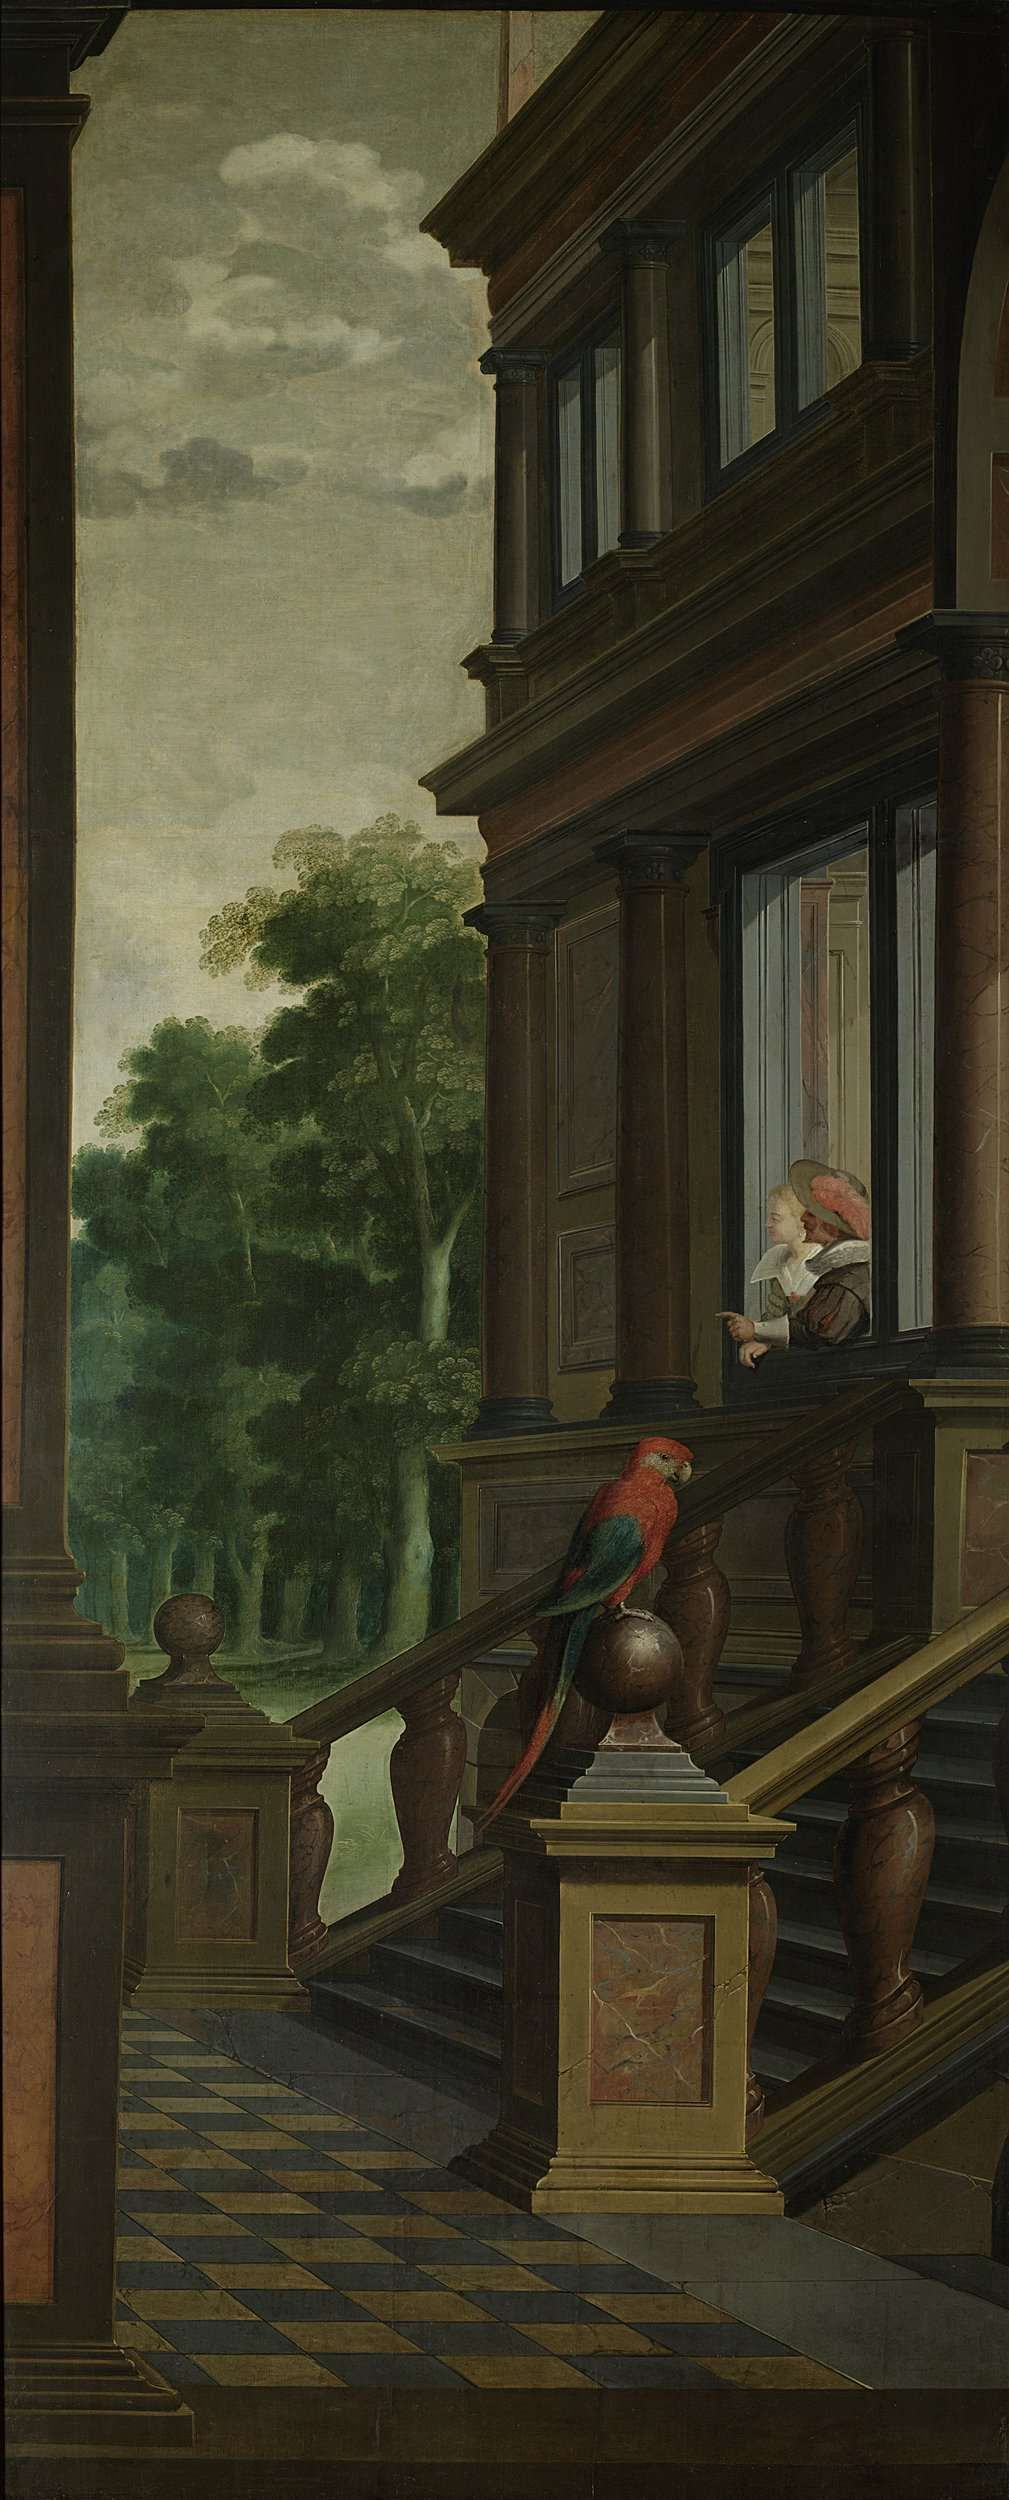 A Staircase, left side of the depiction. One of a seven-part room decoration, Dirck van Delen, 1630 - 1632